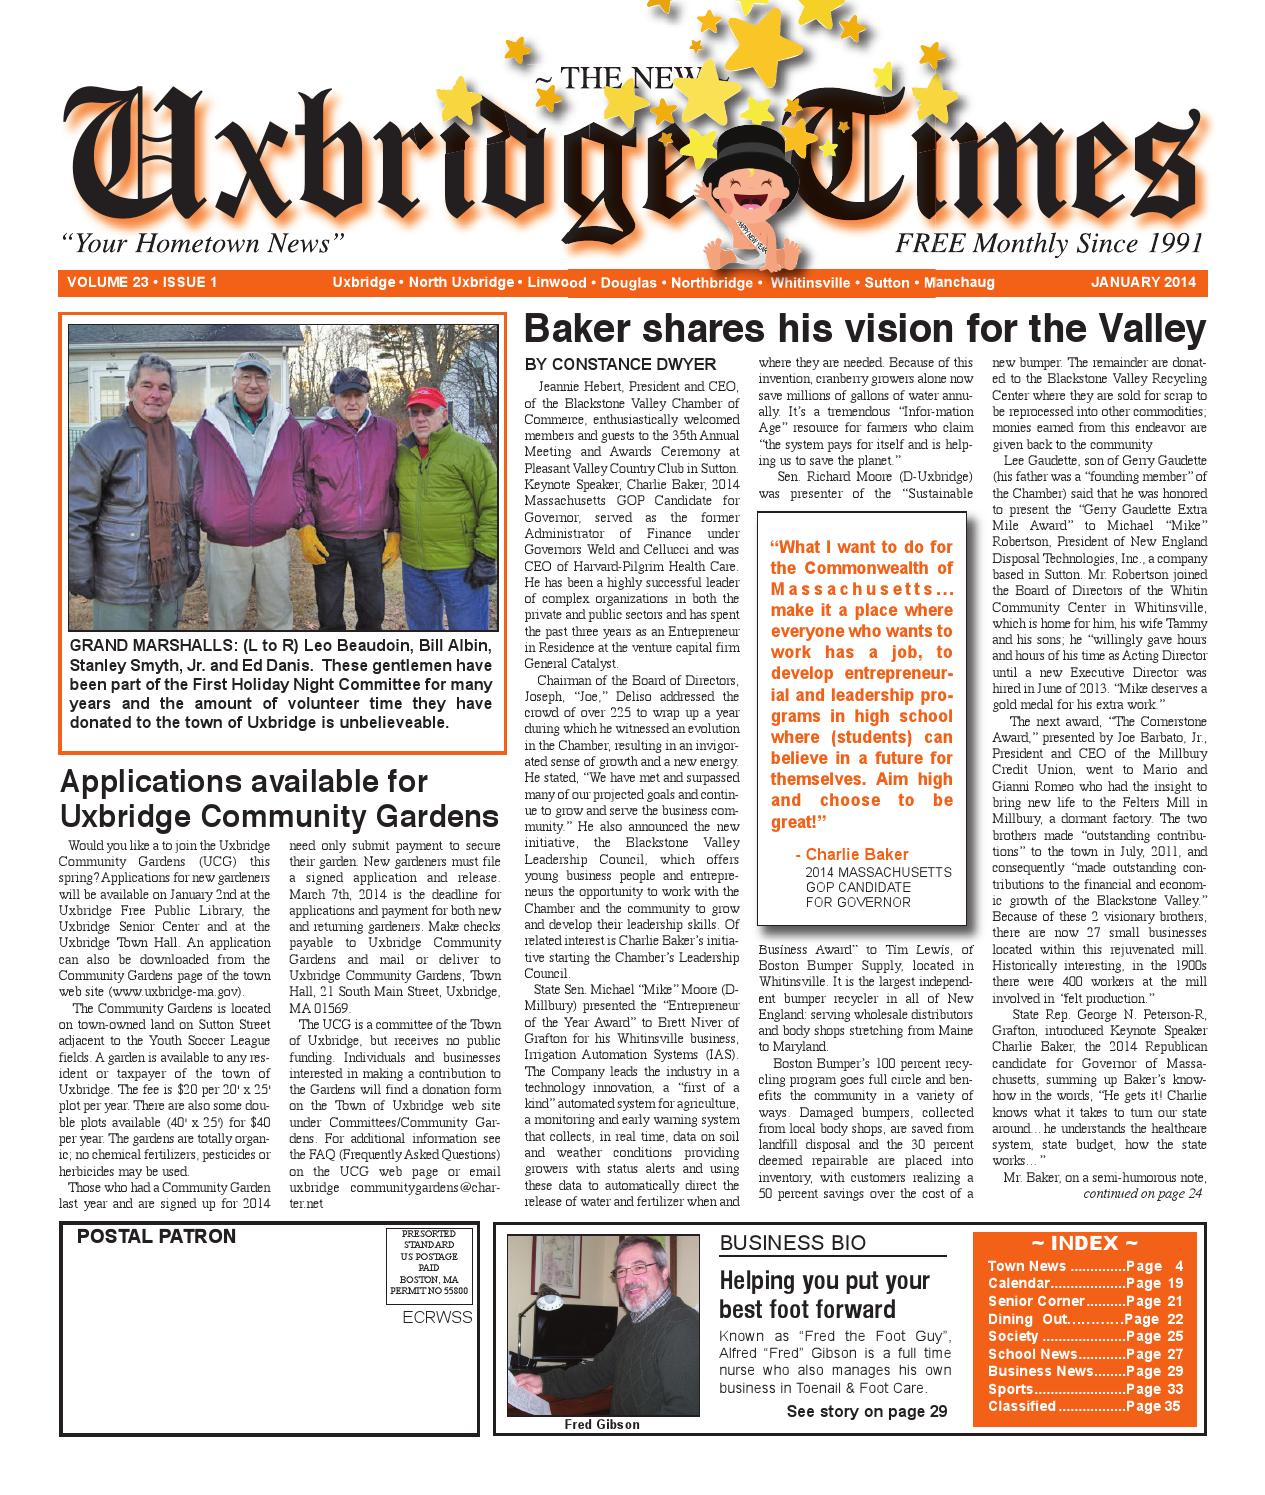 the new uxbridge times by the new uxbridge times the new uxbridge times 2014 by the new uxbridge times issuu